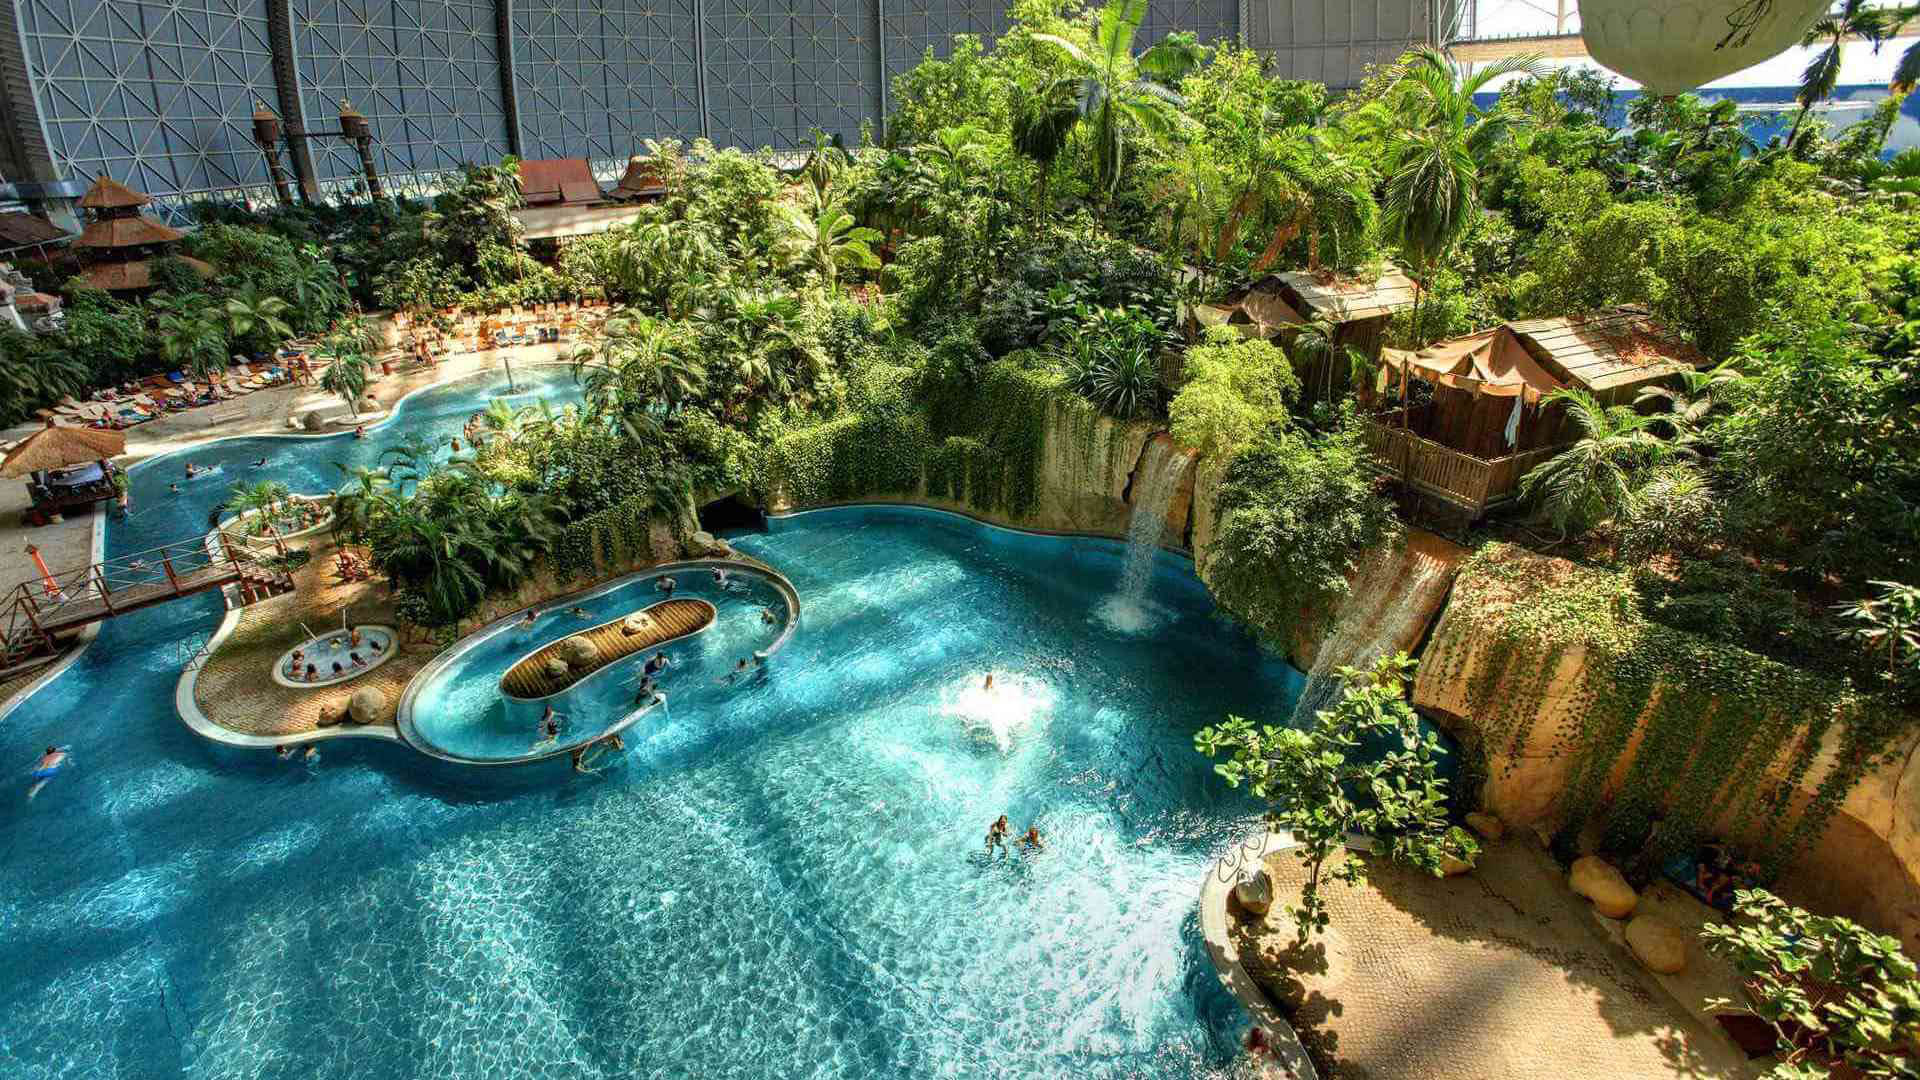 Автобусный тур в Берлин аквапарк Tropical Islands